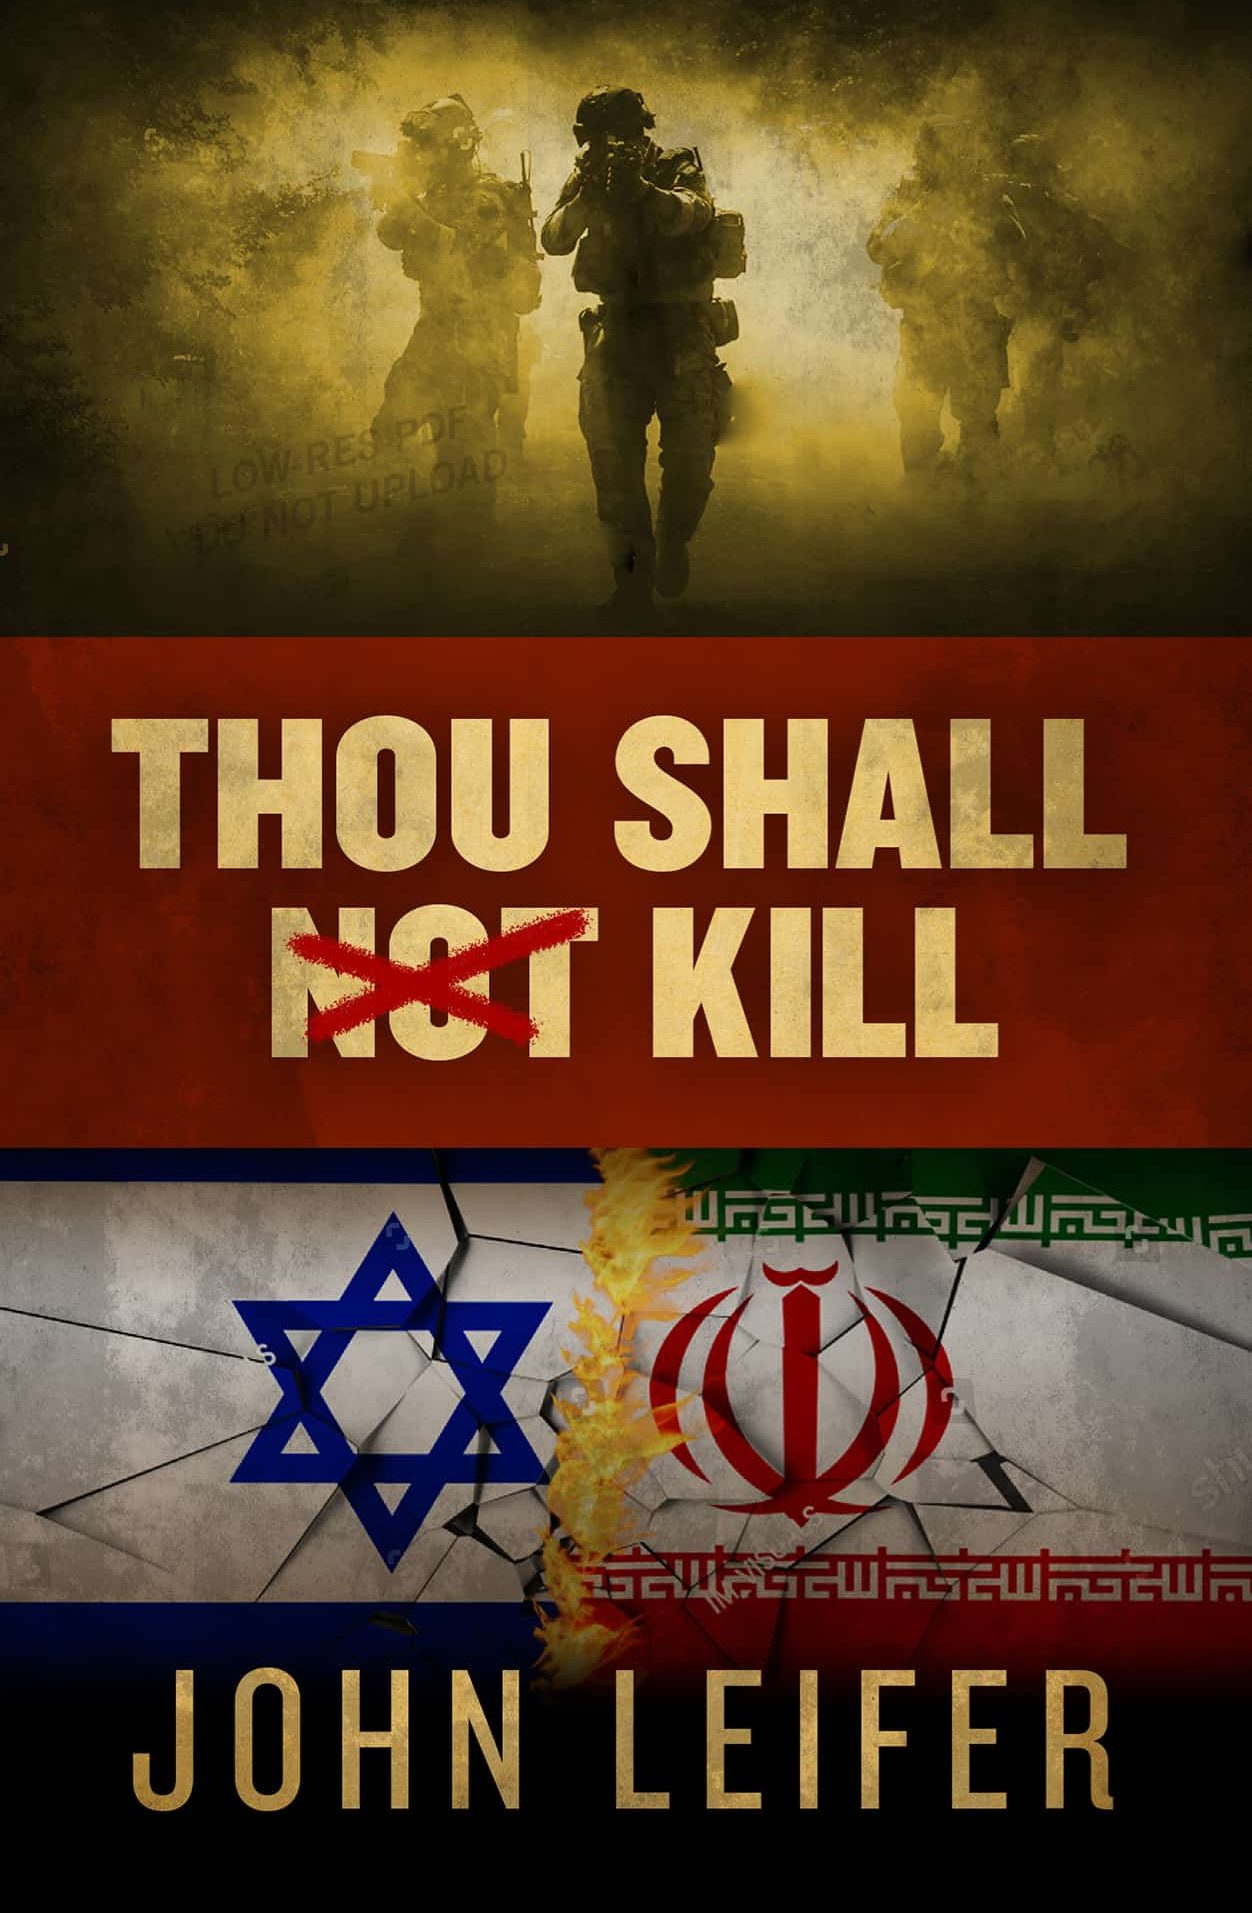 thou shall not kill 2019 by john leifer e1557171479886 - Thou Shall Not Kill